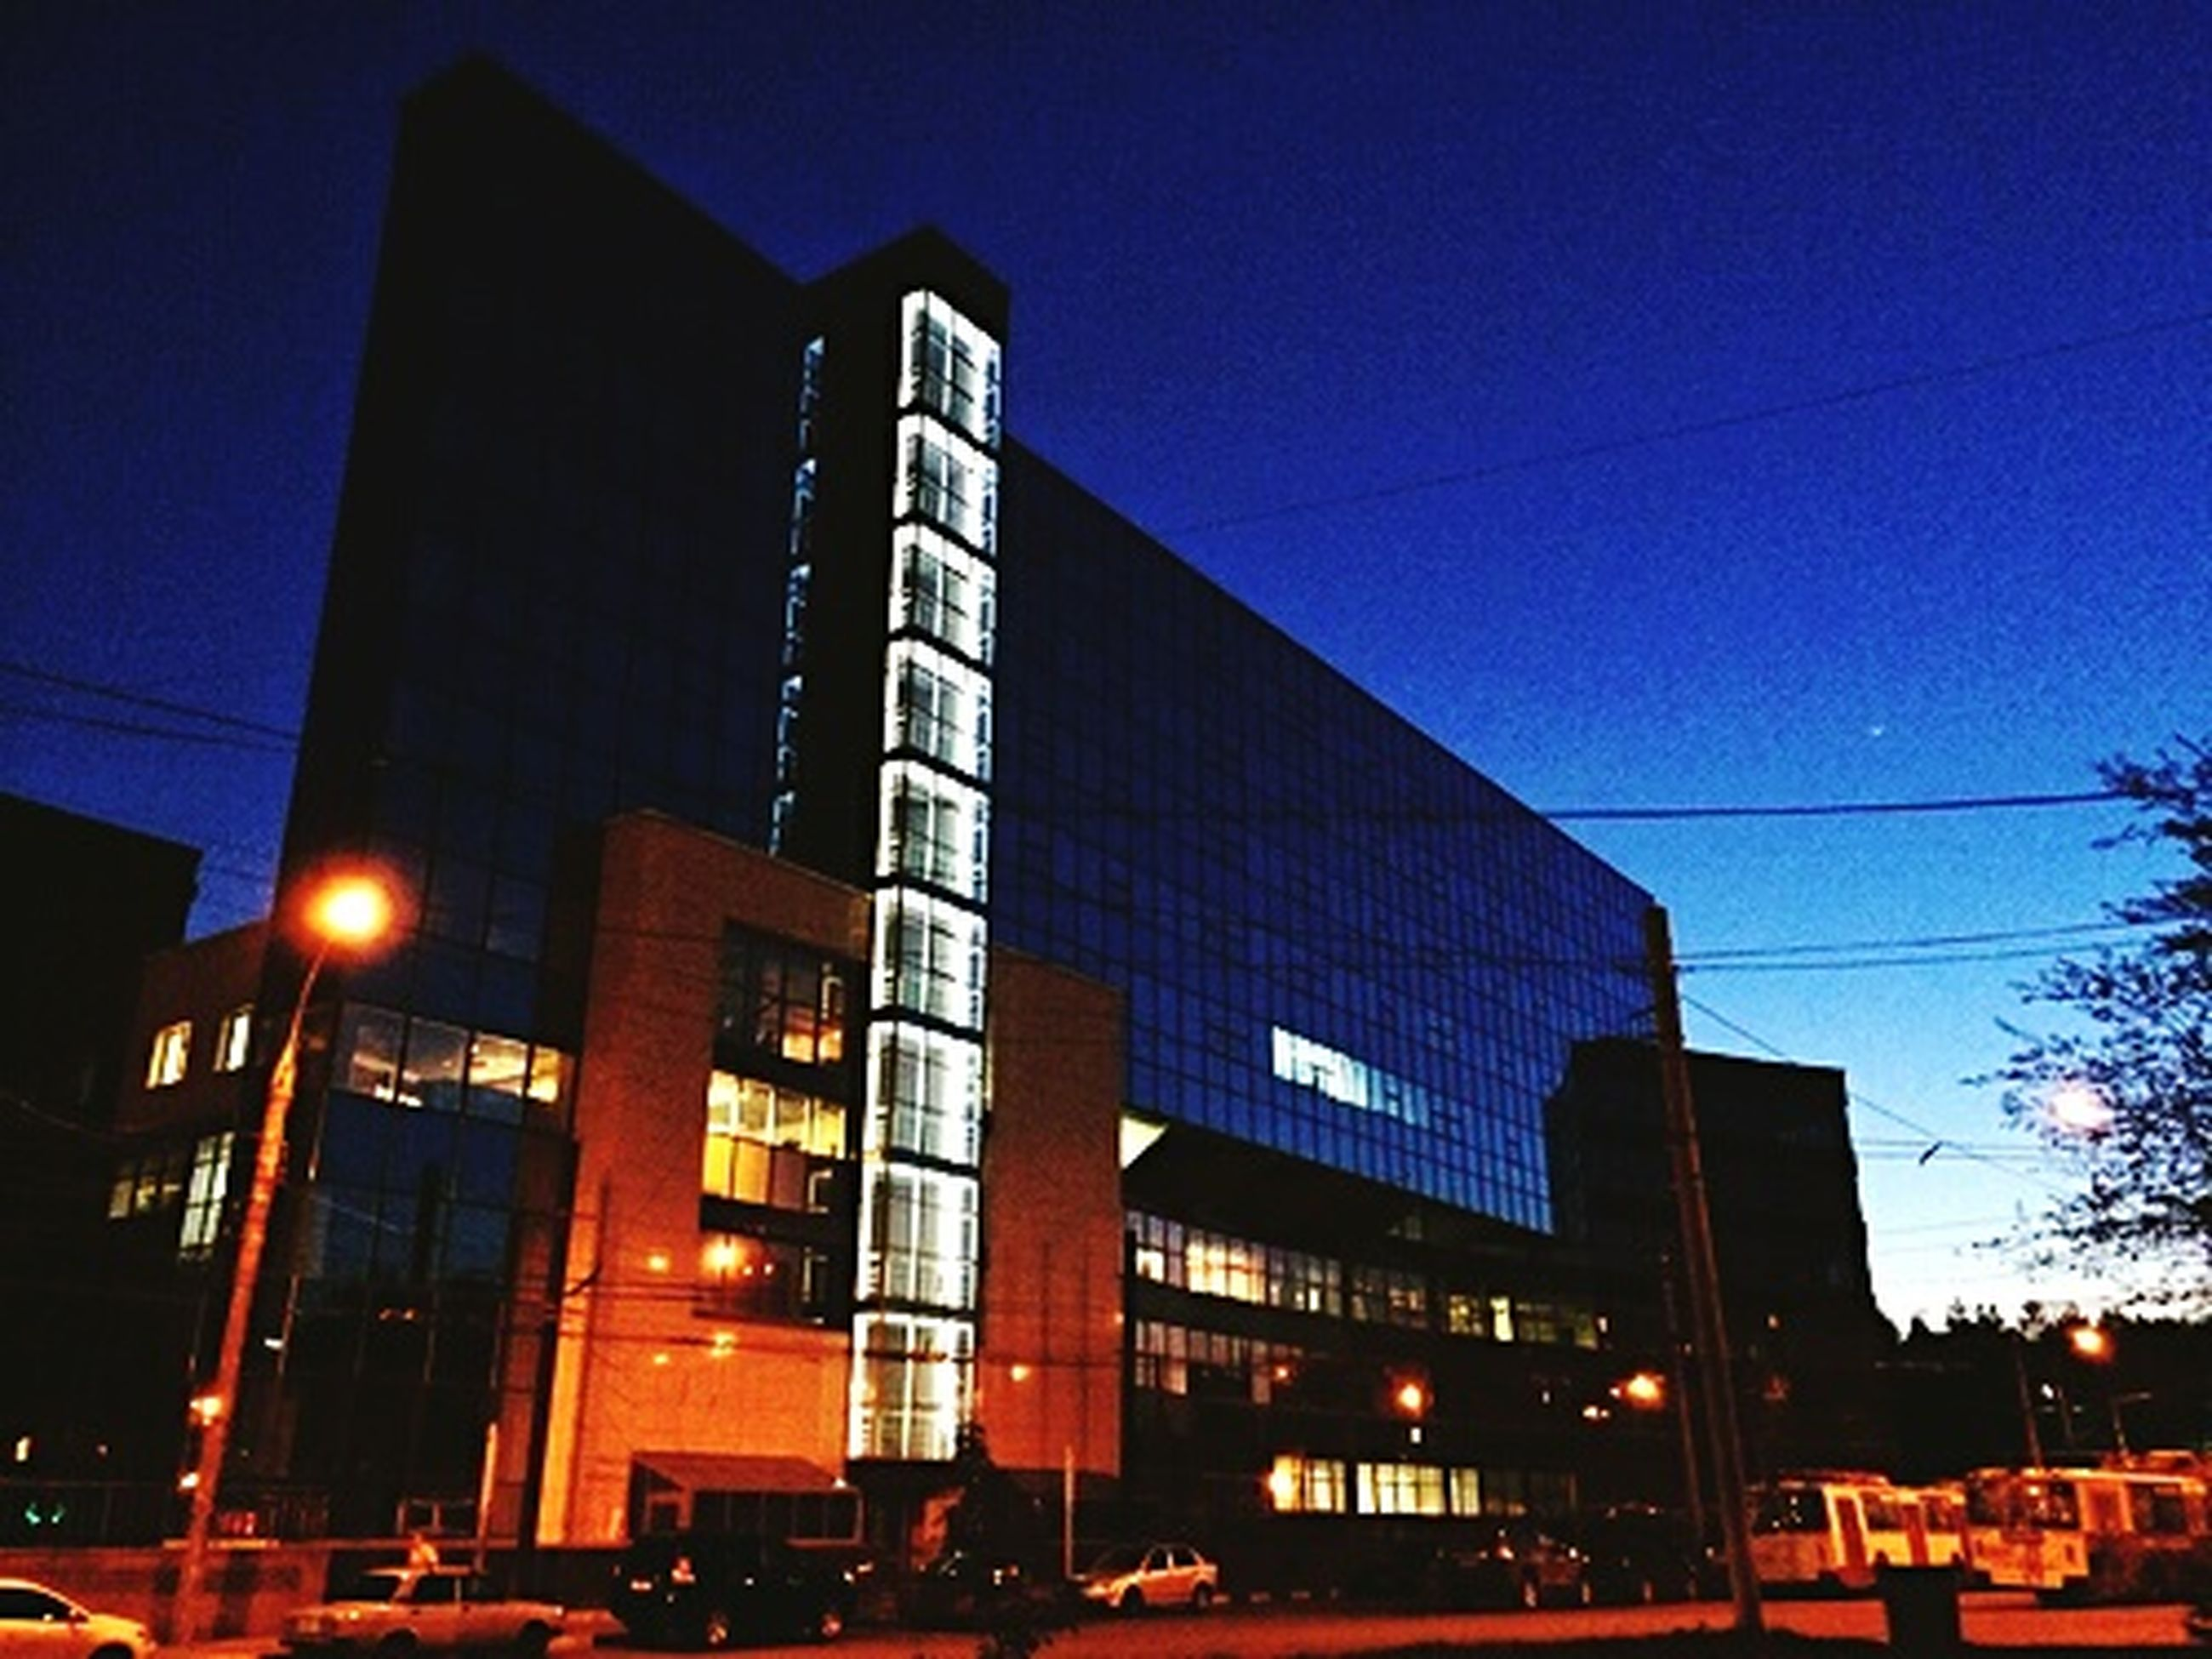 building exterior, architecture, built structure, illuminated, low angle view, city, building, night, street light, sky, residential building, modern, city life, office building, window, lighting equipment, residential structure, outdoors, dusk, no people